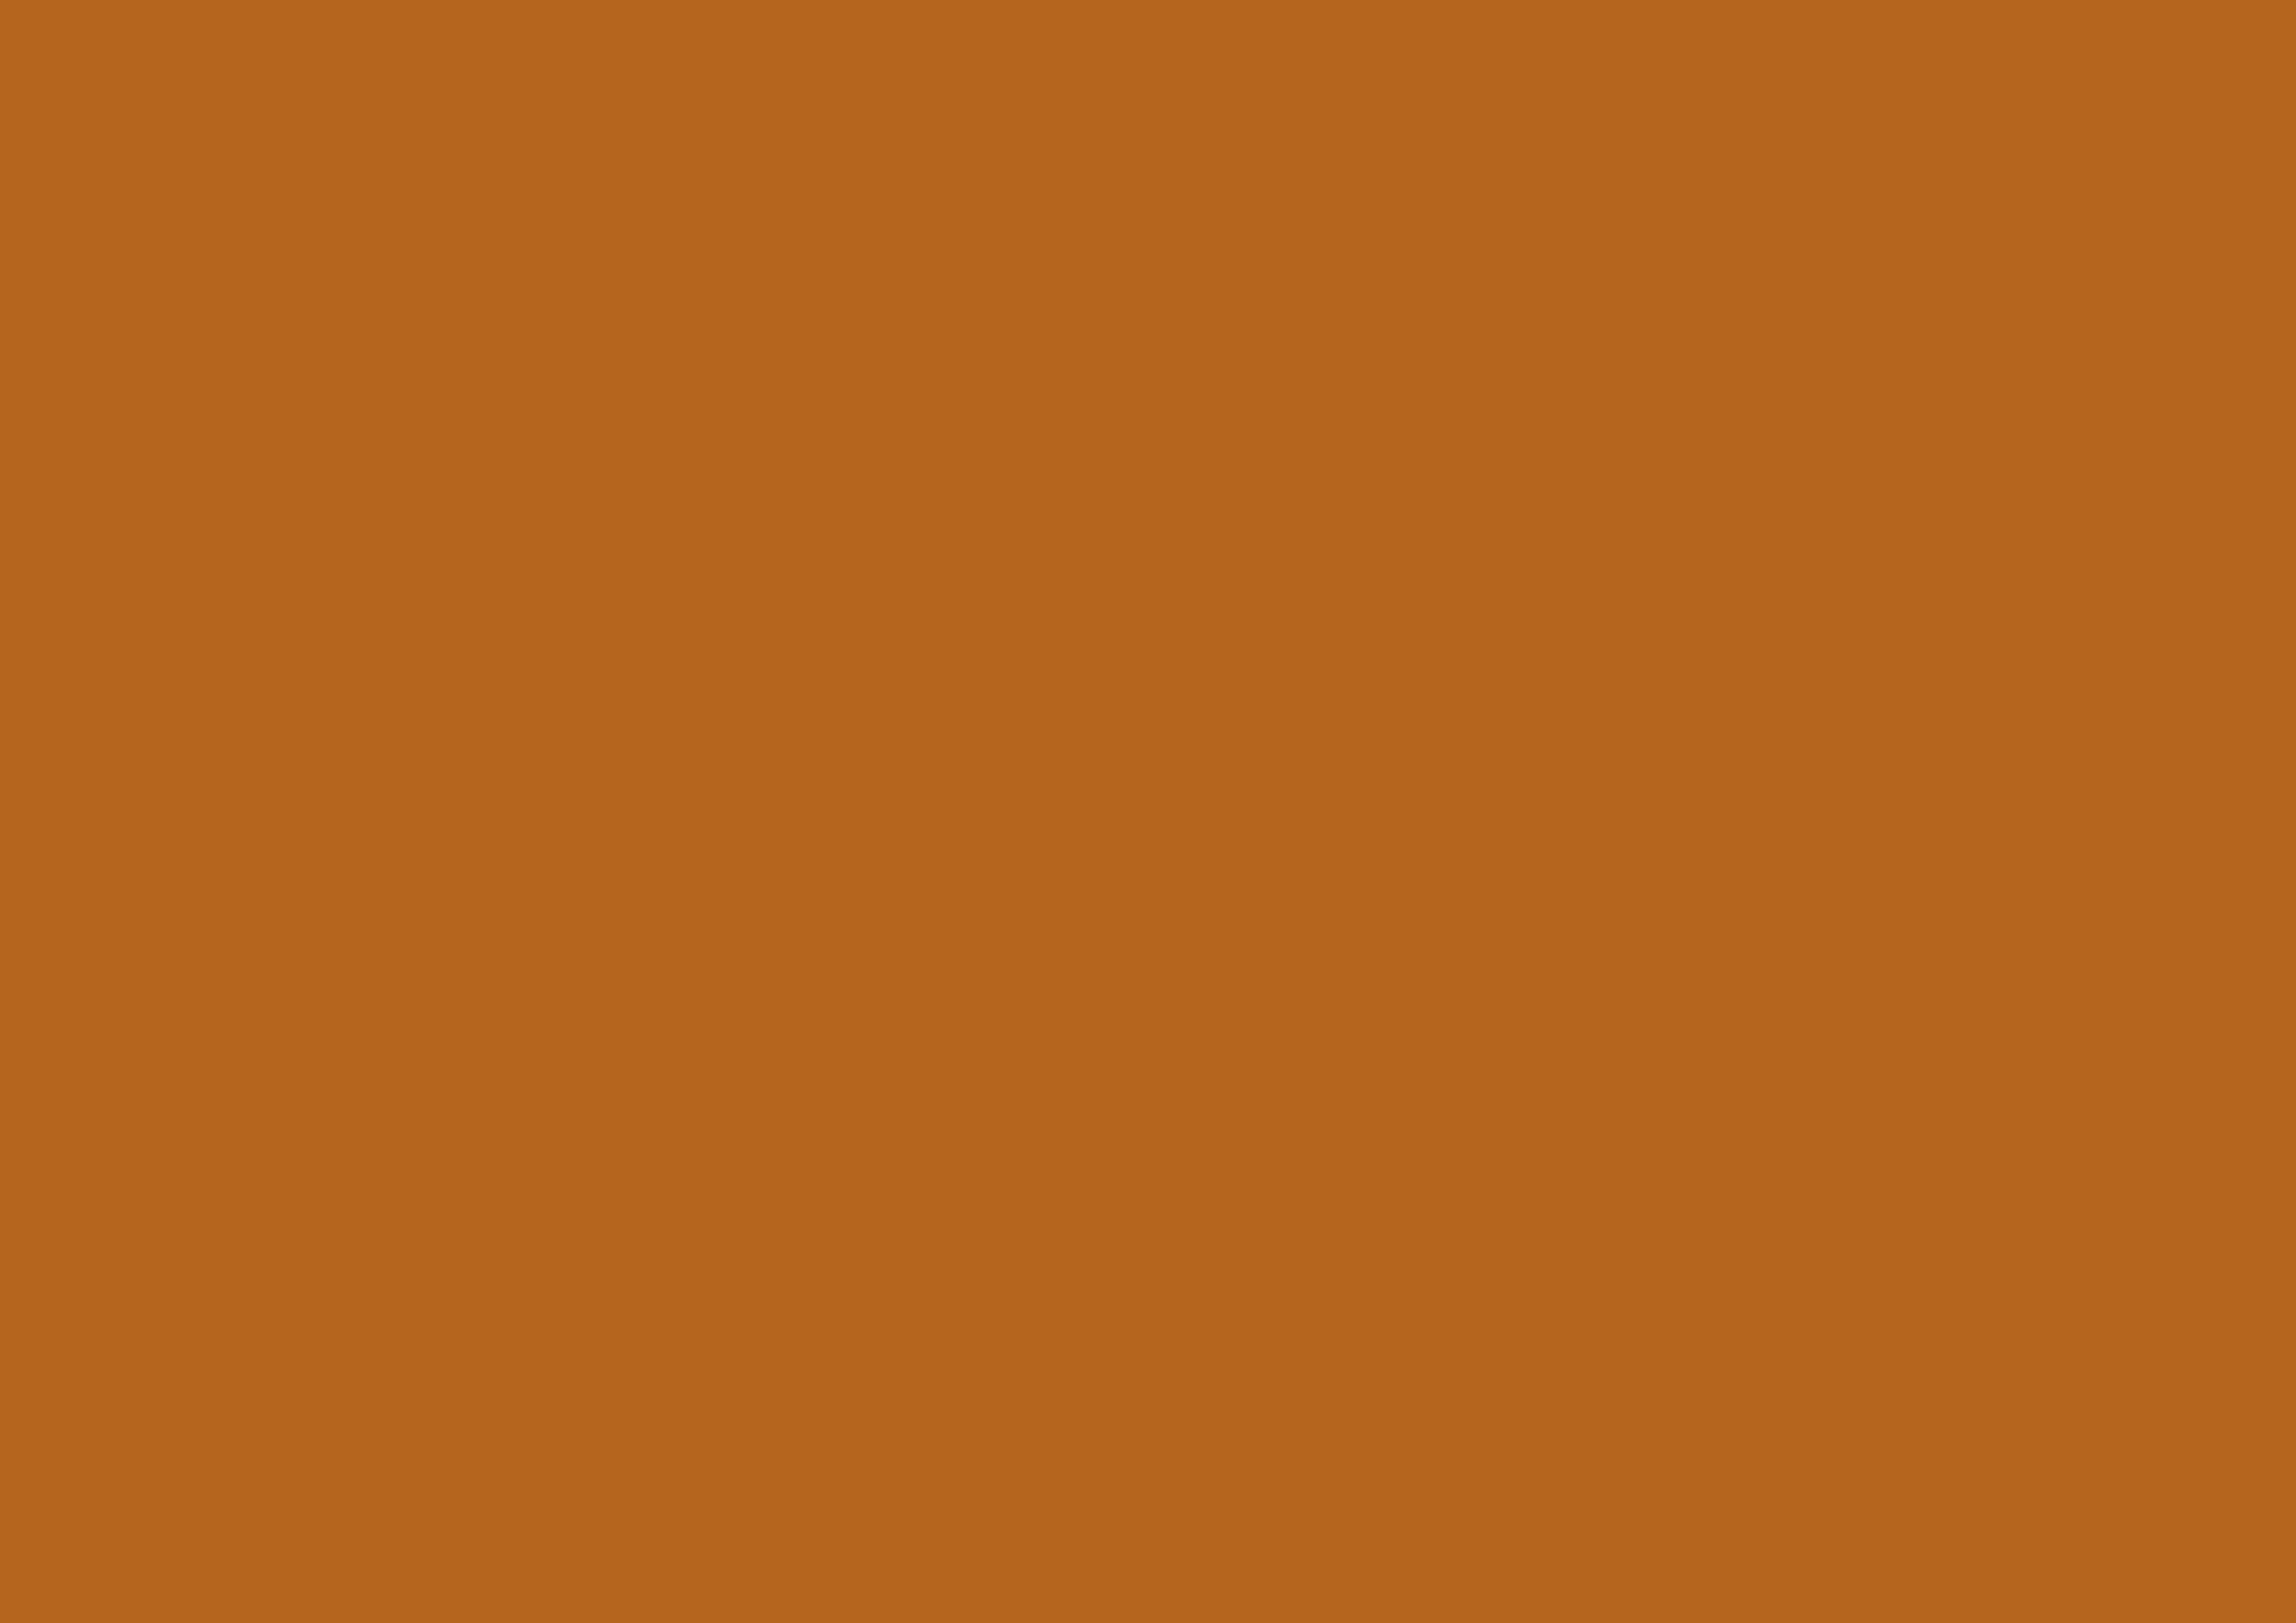 3508x2480 Light Brown Solid Color Background